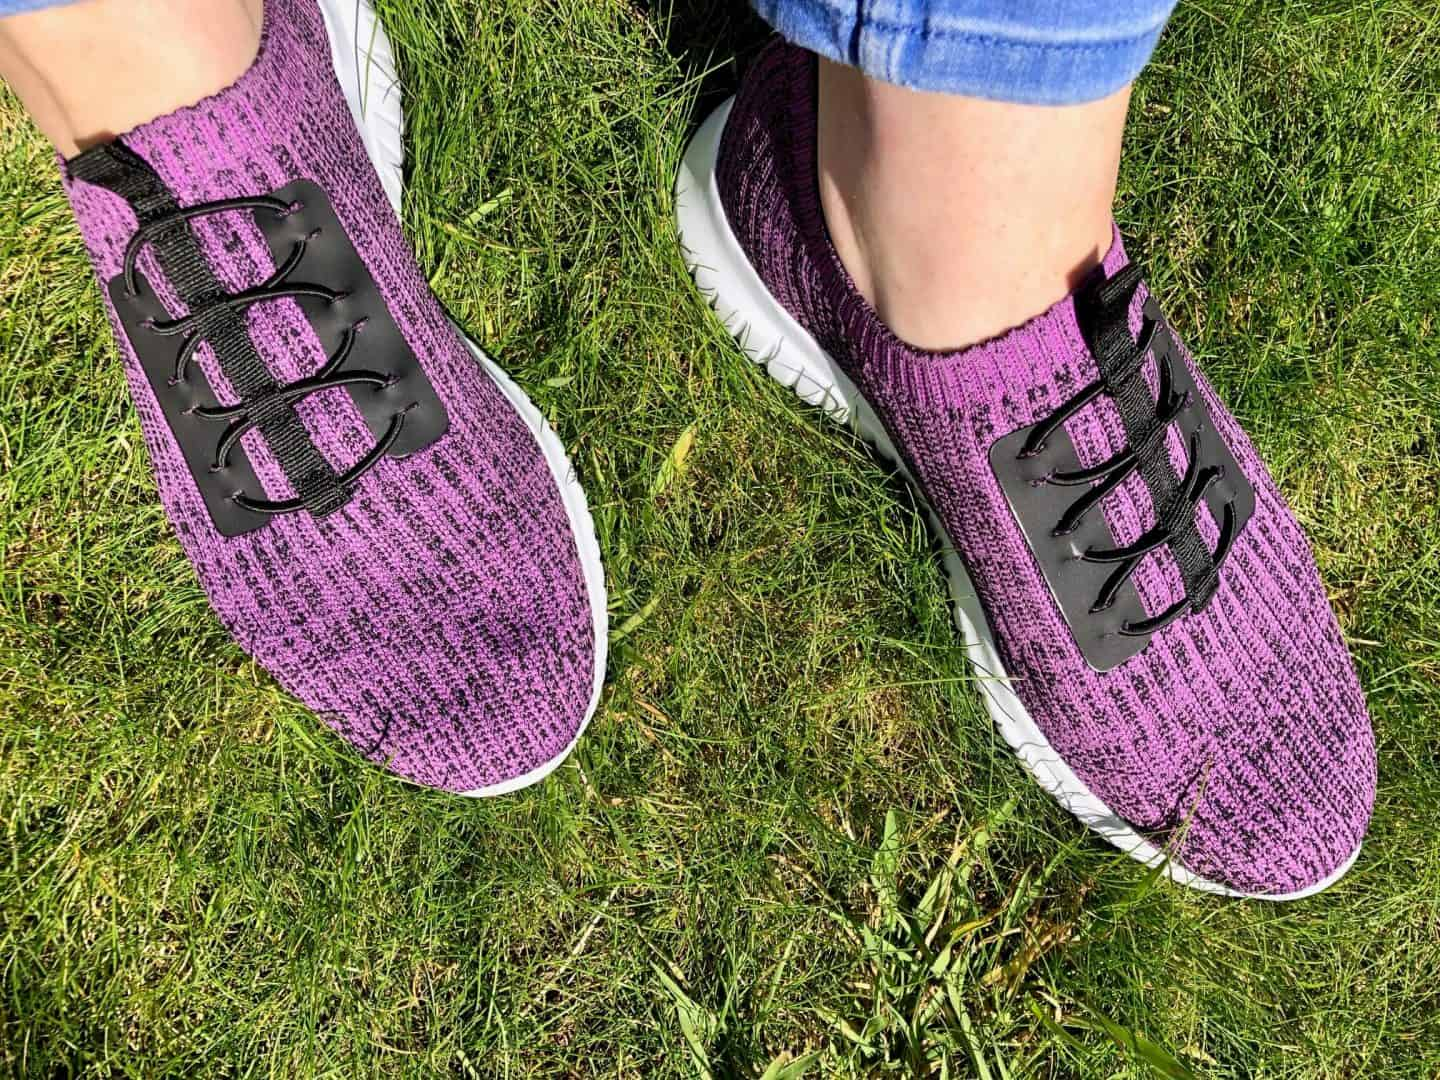 Women's Knitted Trainers From Tiosebon - Review